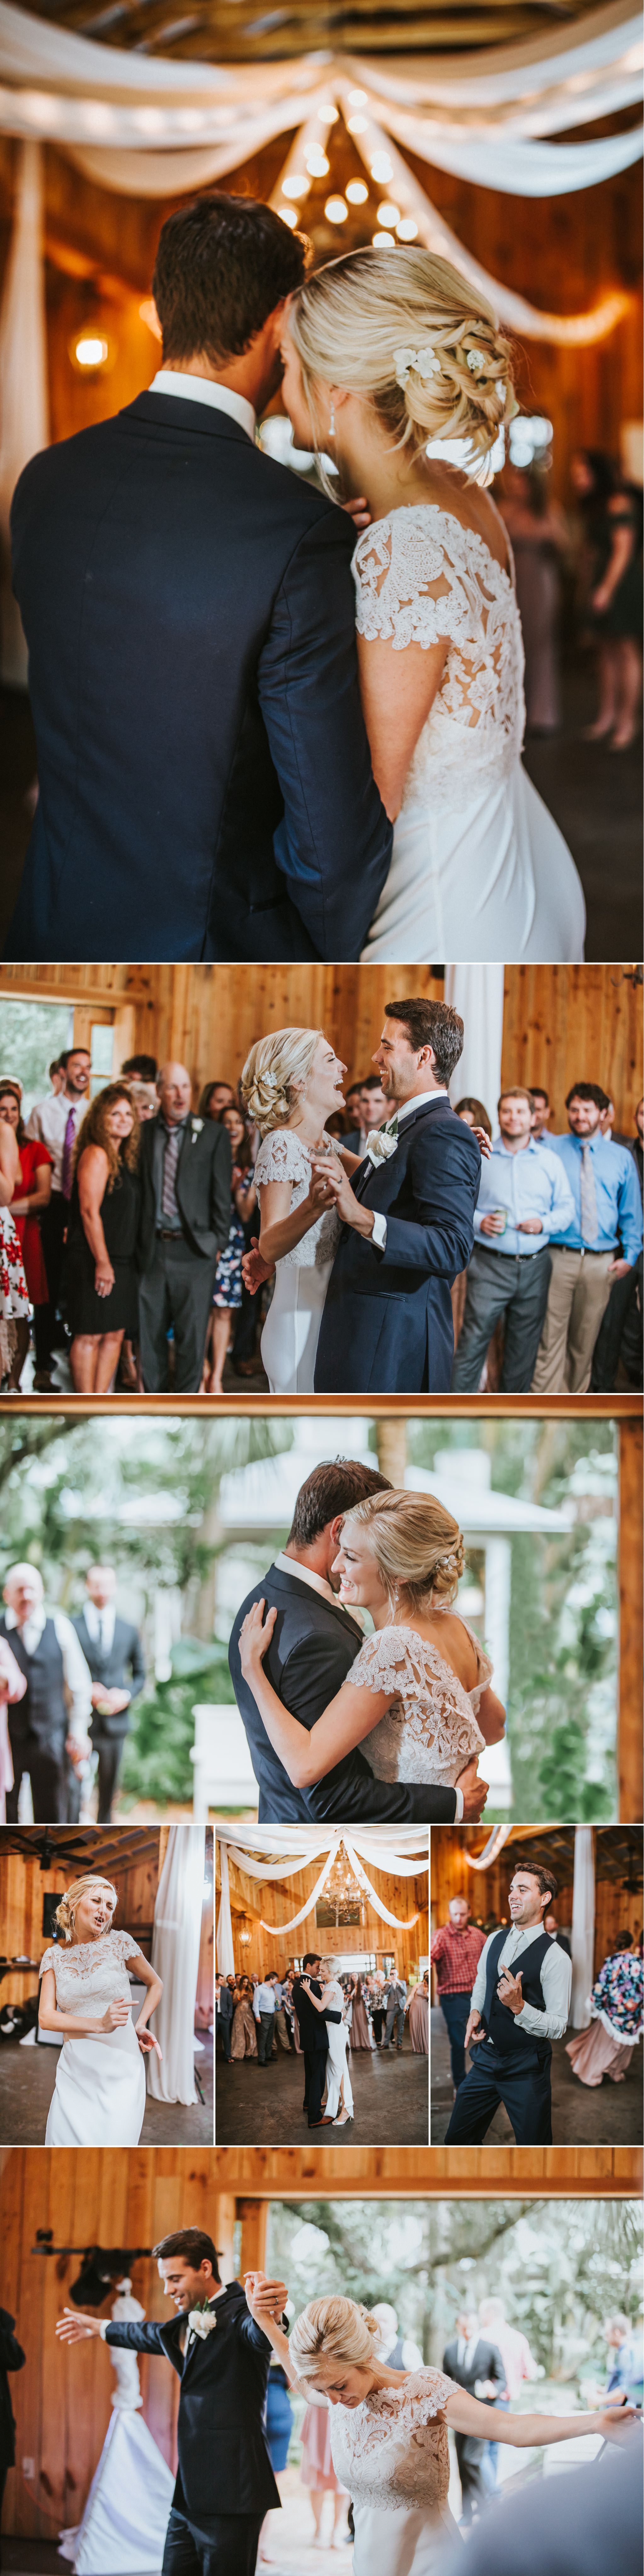 Boho Chic Orlando Wedding Photography Delameter House - Angela + Max 25.jpg